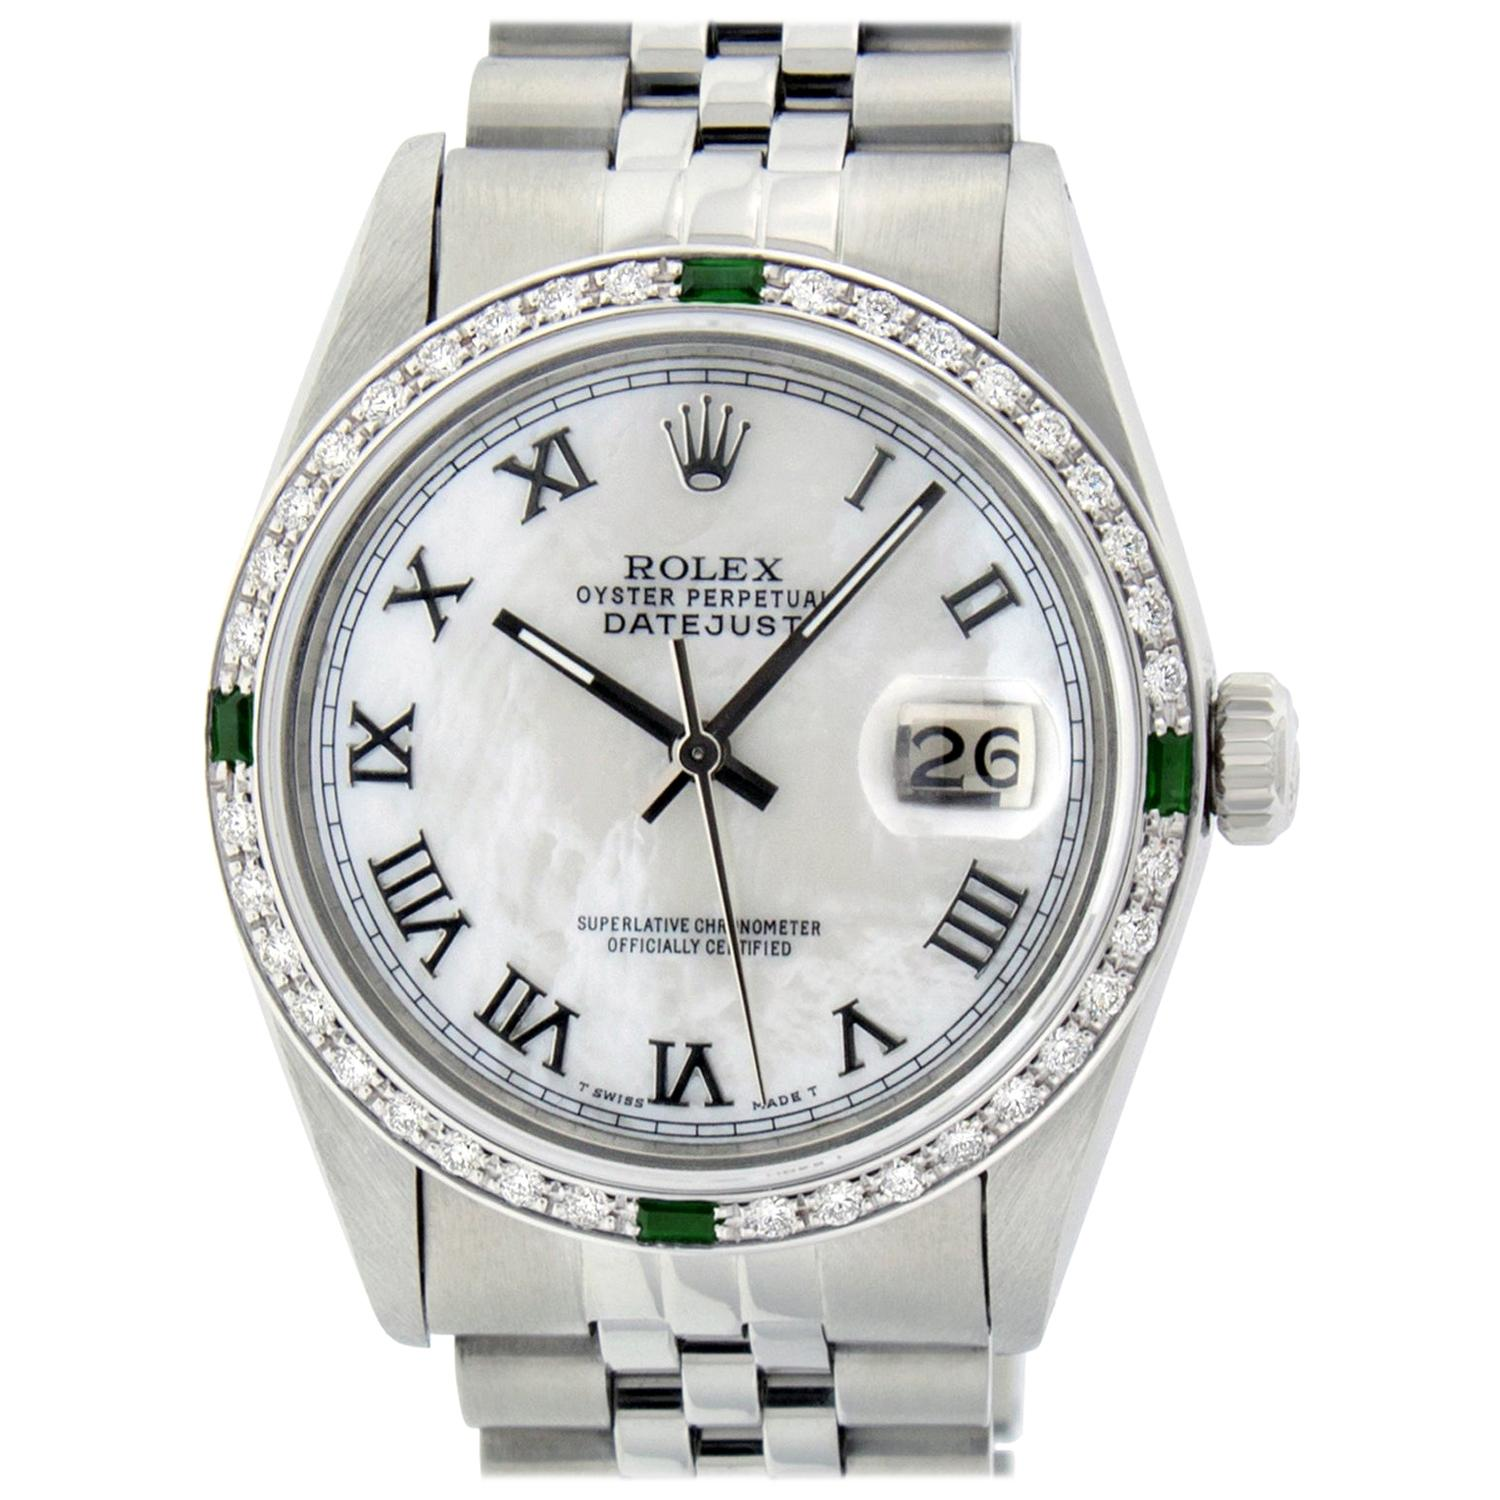 Rolex Men's Datejust SS and 18K White MOP Roman Dial Watch Diamond Bezel Emerald